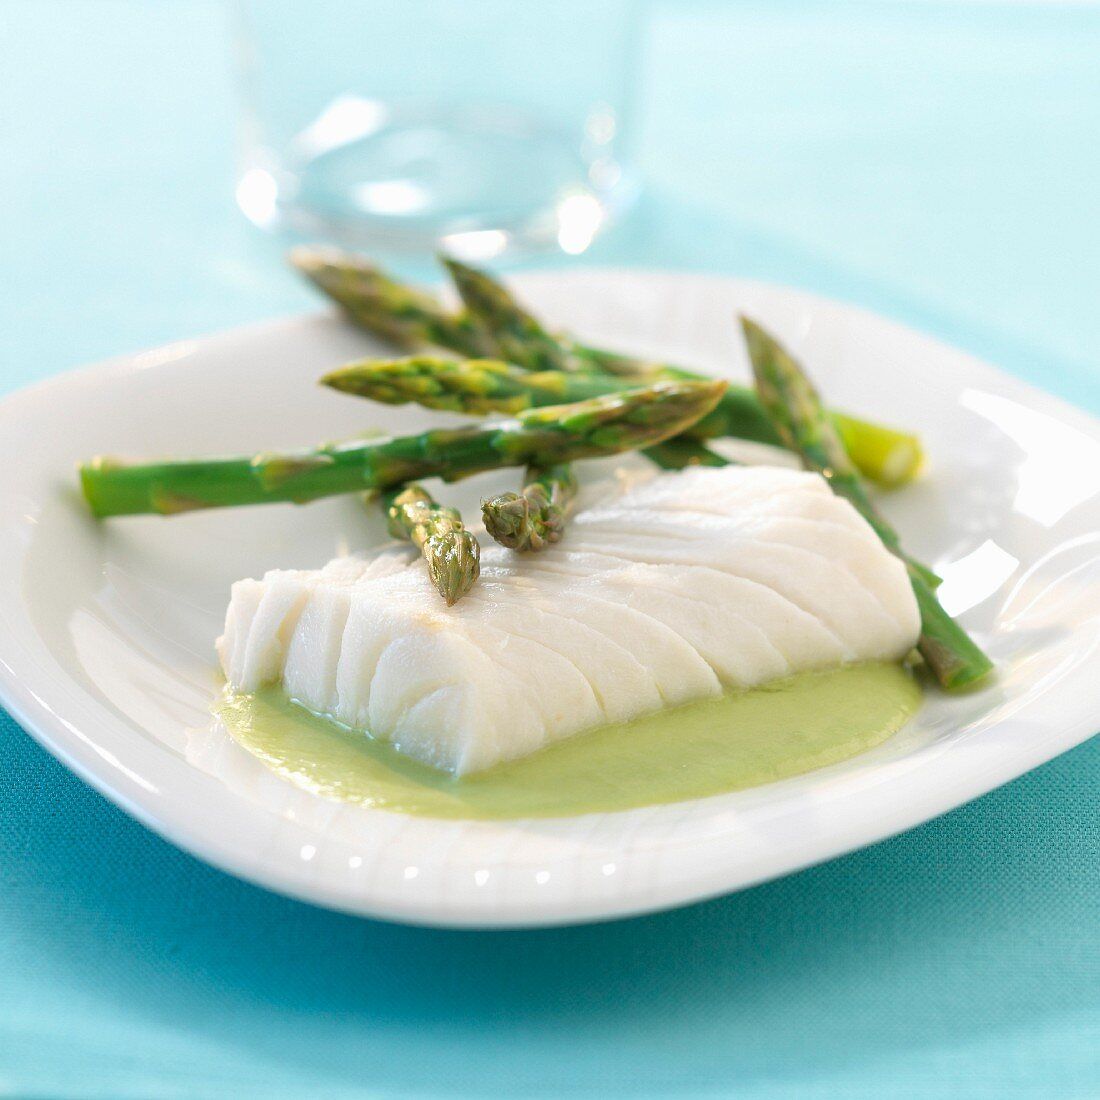 Fillet of cod with green asparagus coulis